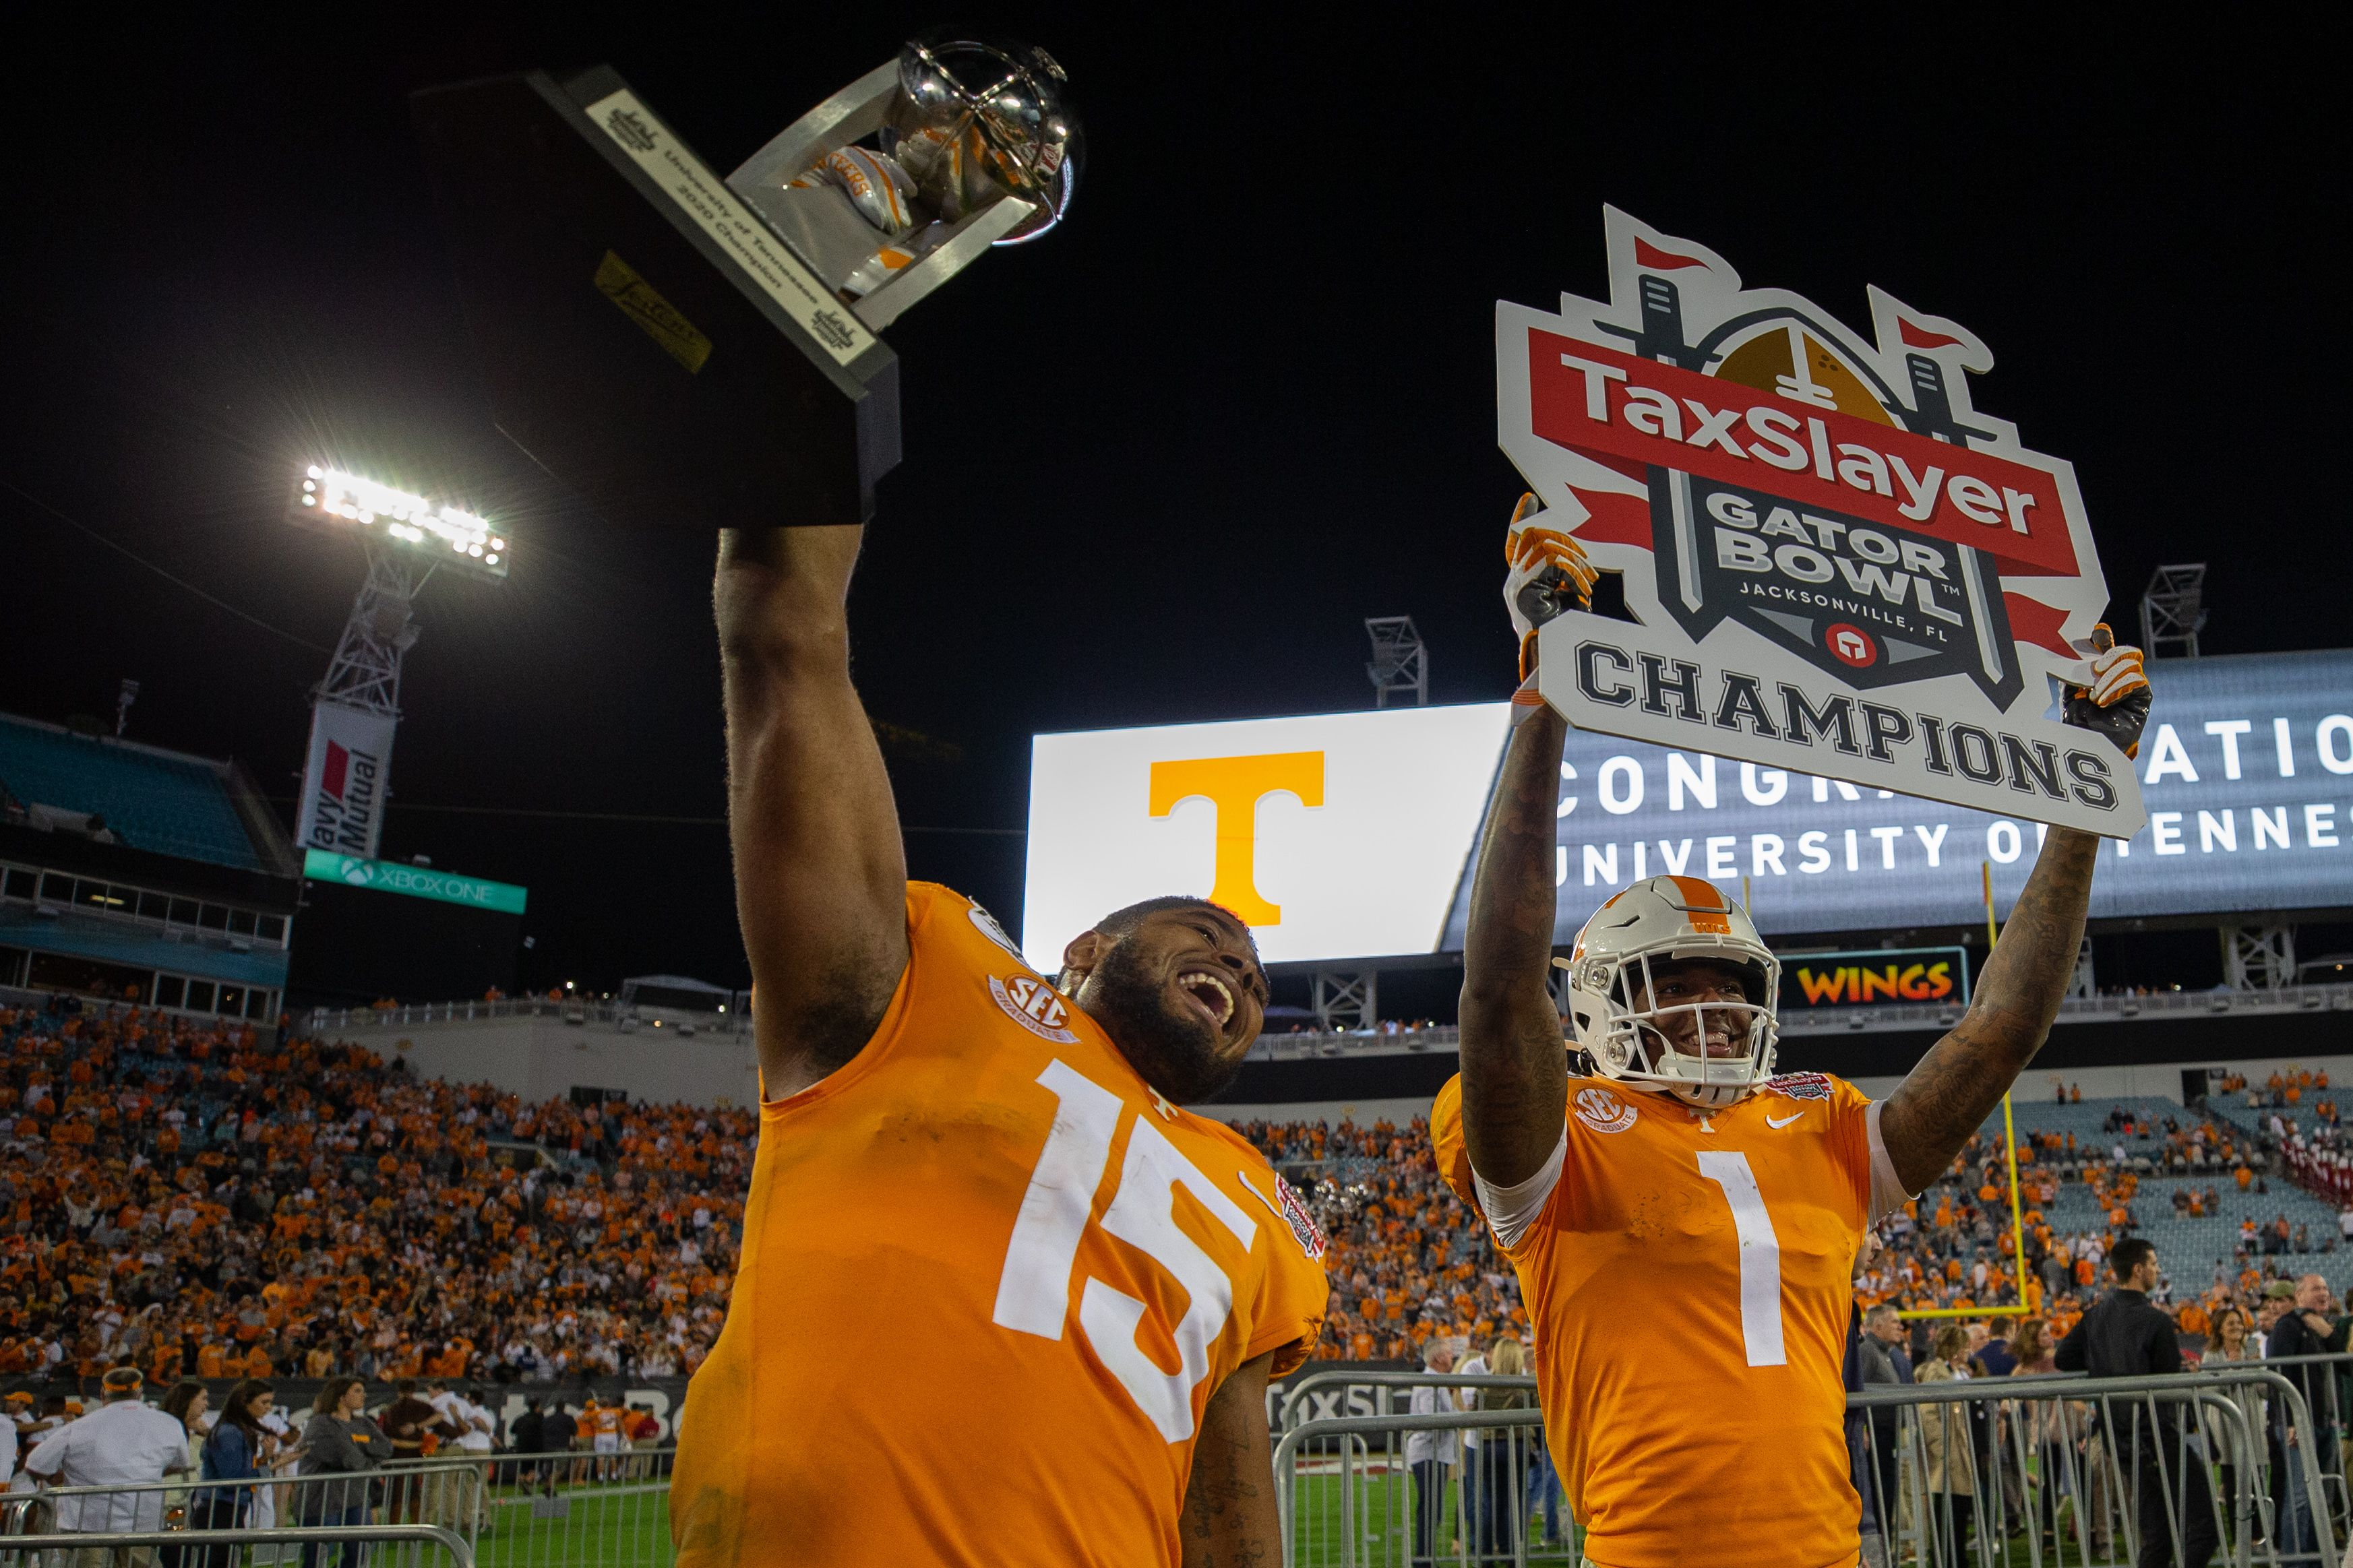 Tennessee players celebrating